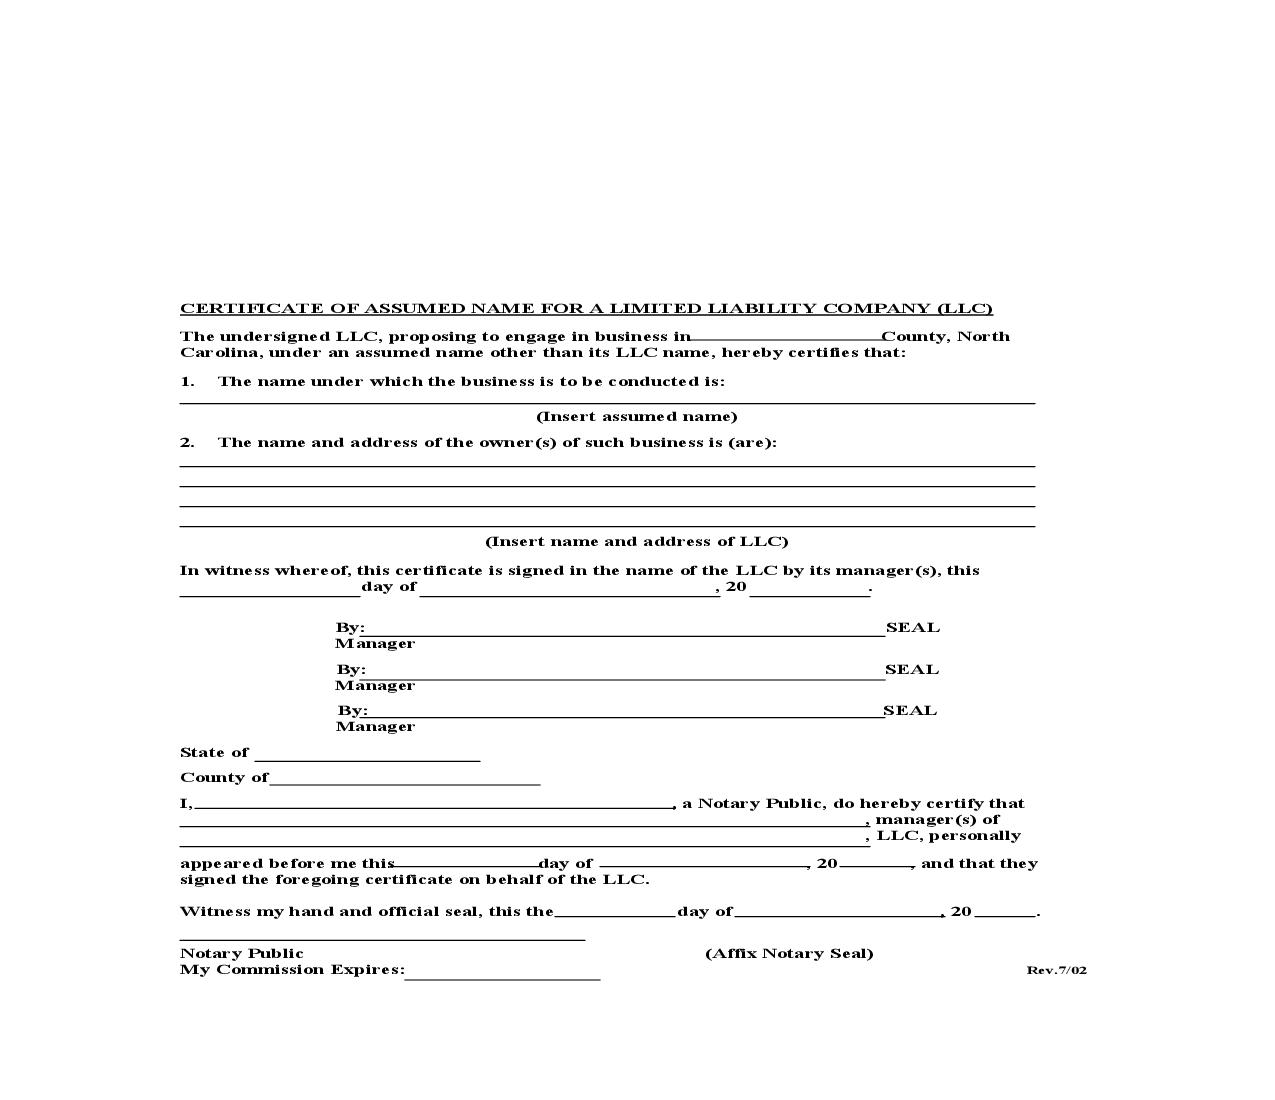 Certificate Of Assumed Name For Limited Liability Company |  | North Carolina